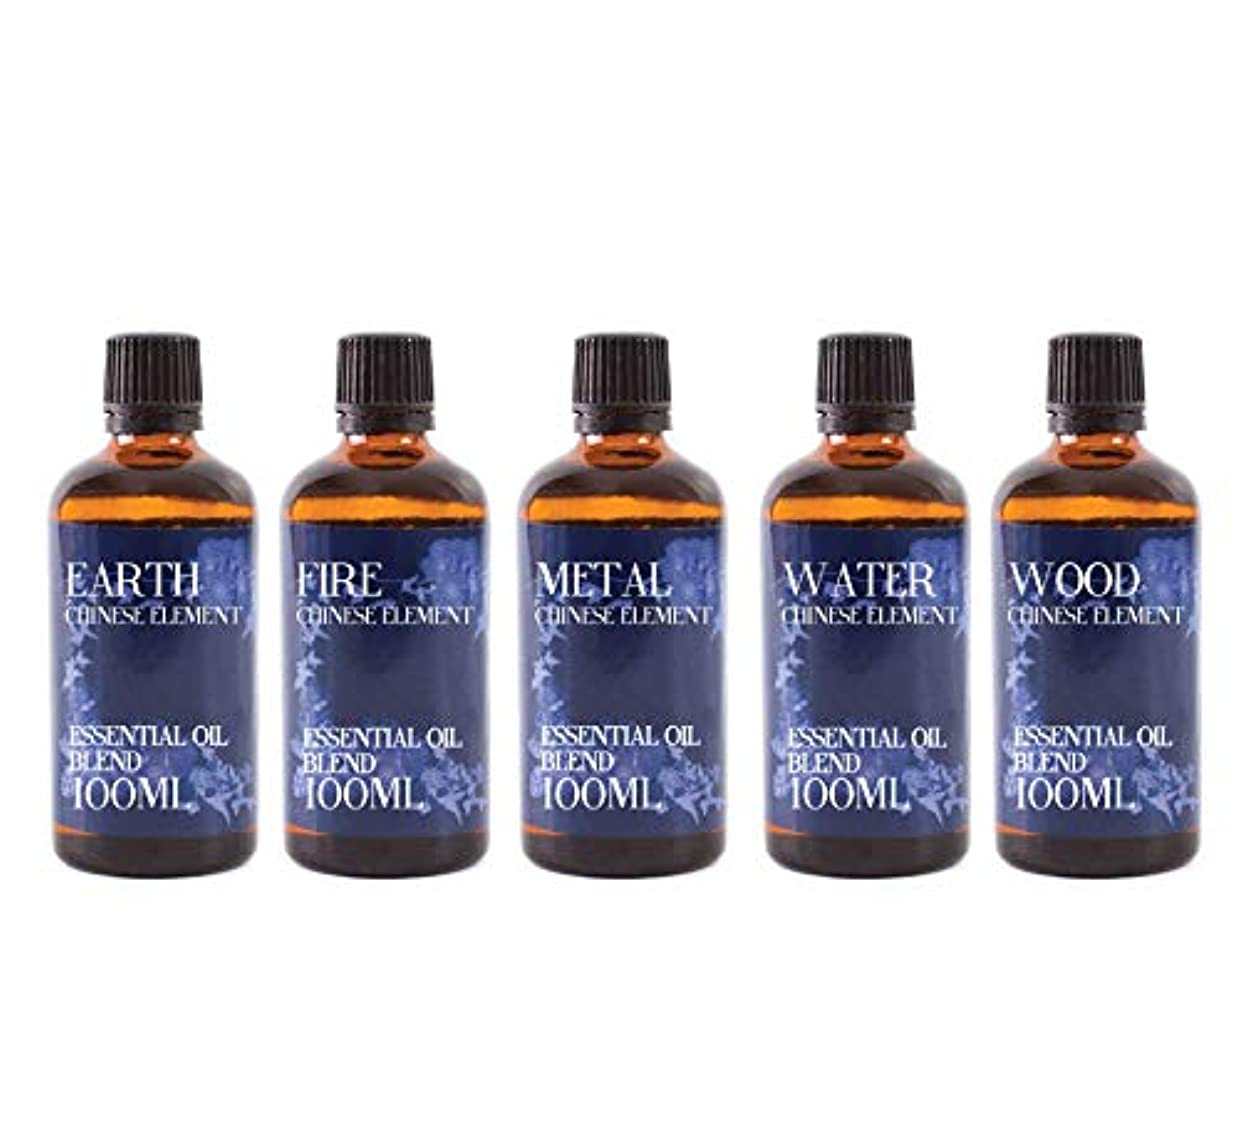 クラウド上院議員想像力Mystix London | Gift Starter Pack of 5x100ml Chinese Elements Essential Oil Blends